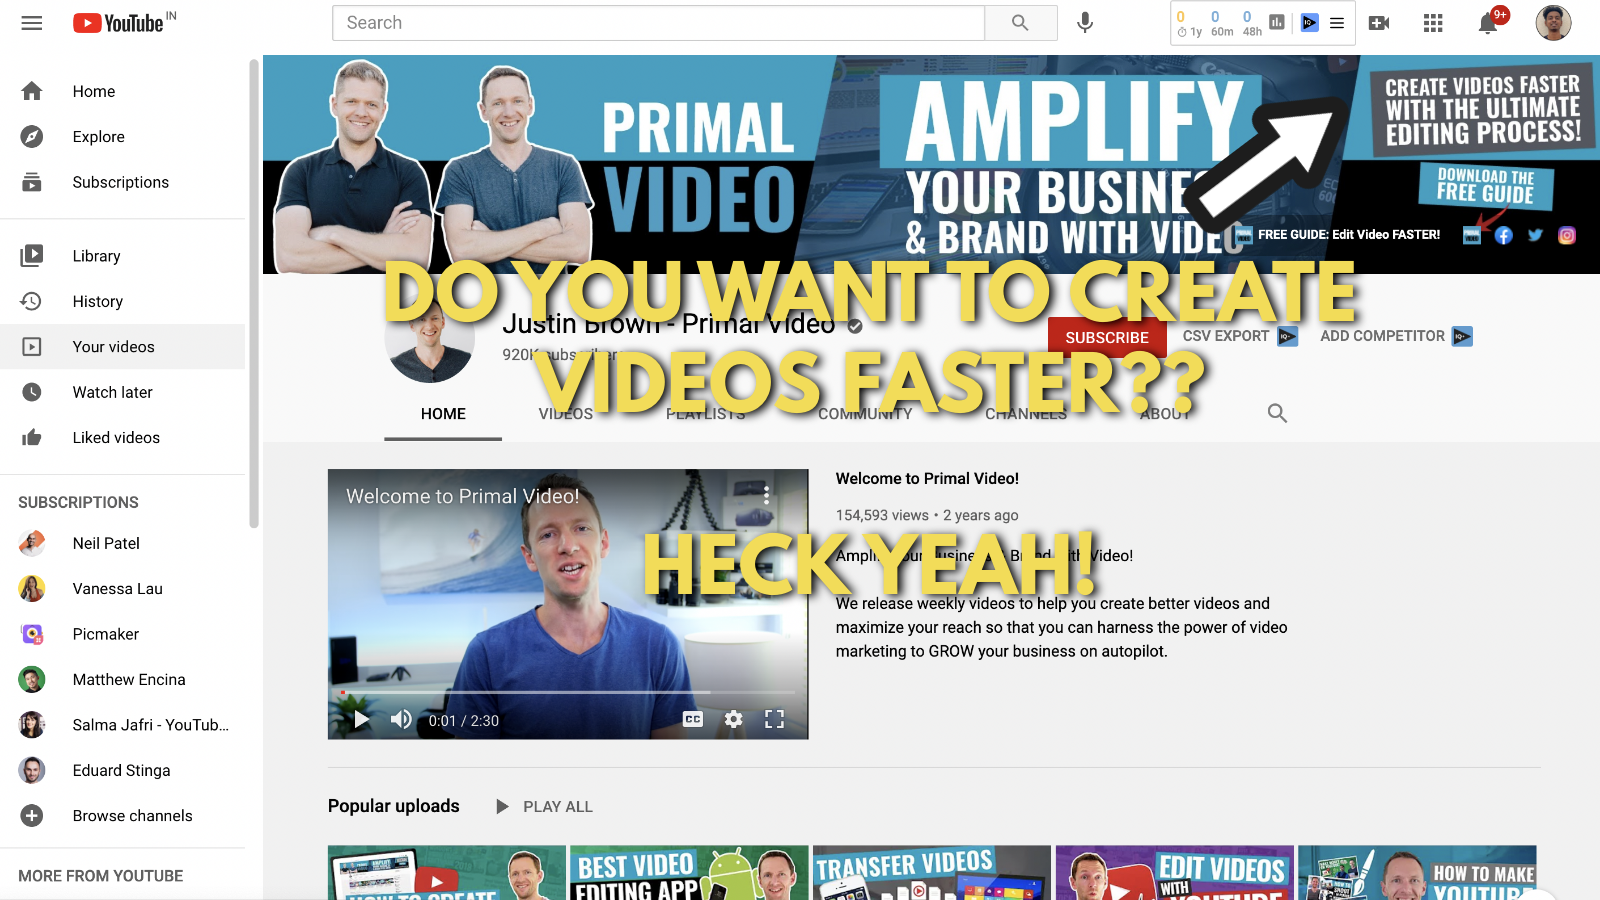 A screenshot of Primal video's YouTube channel 7